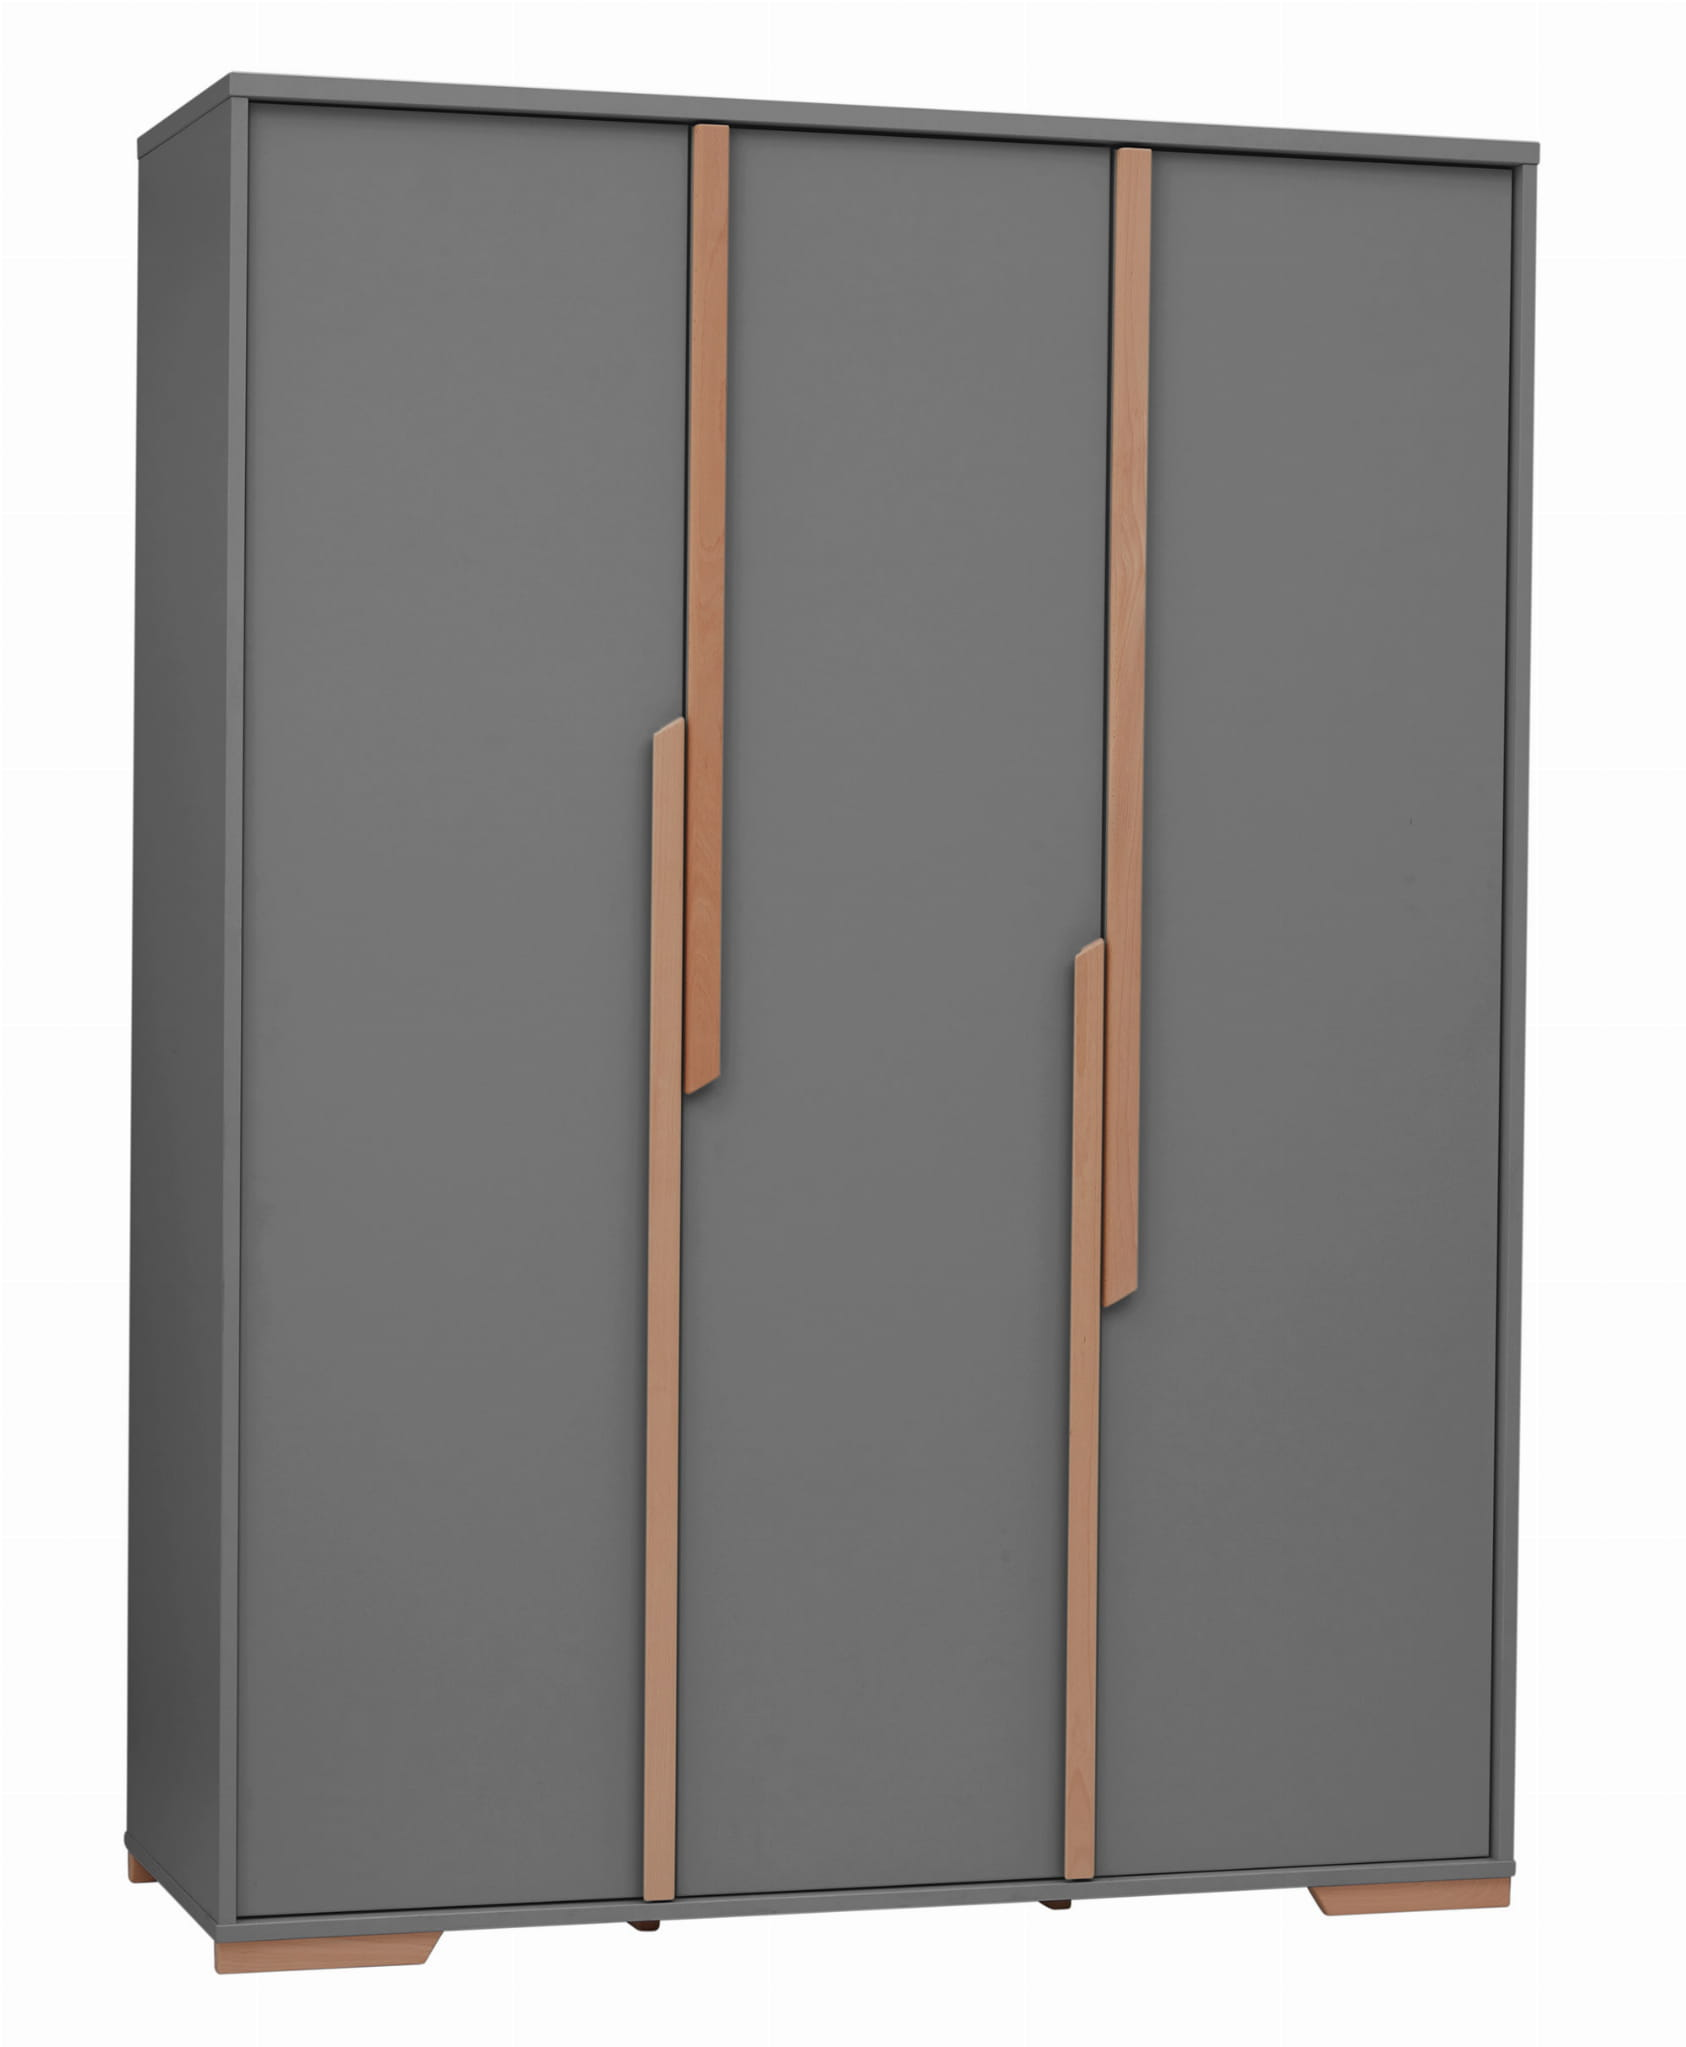 Snap_3door wardrobe_dark_grey_1.jpg